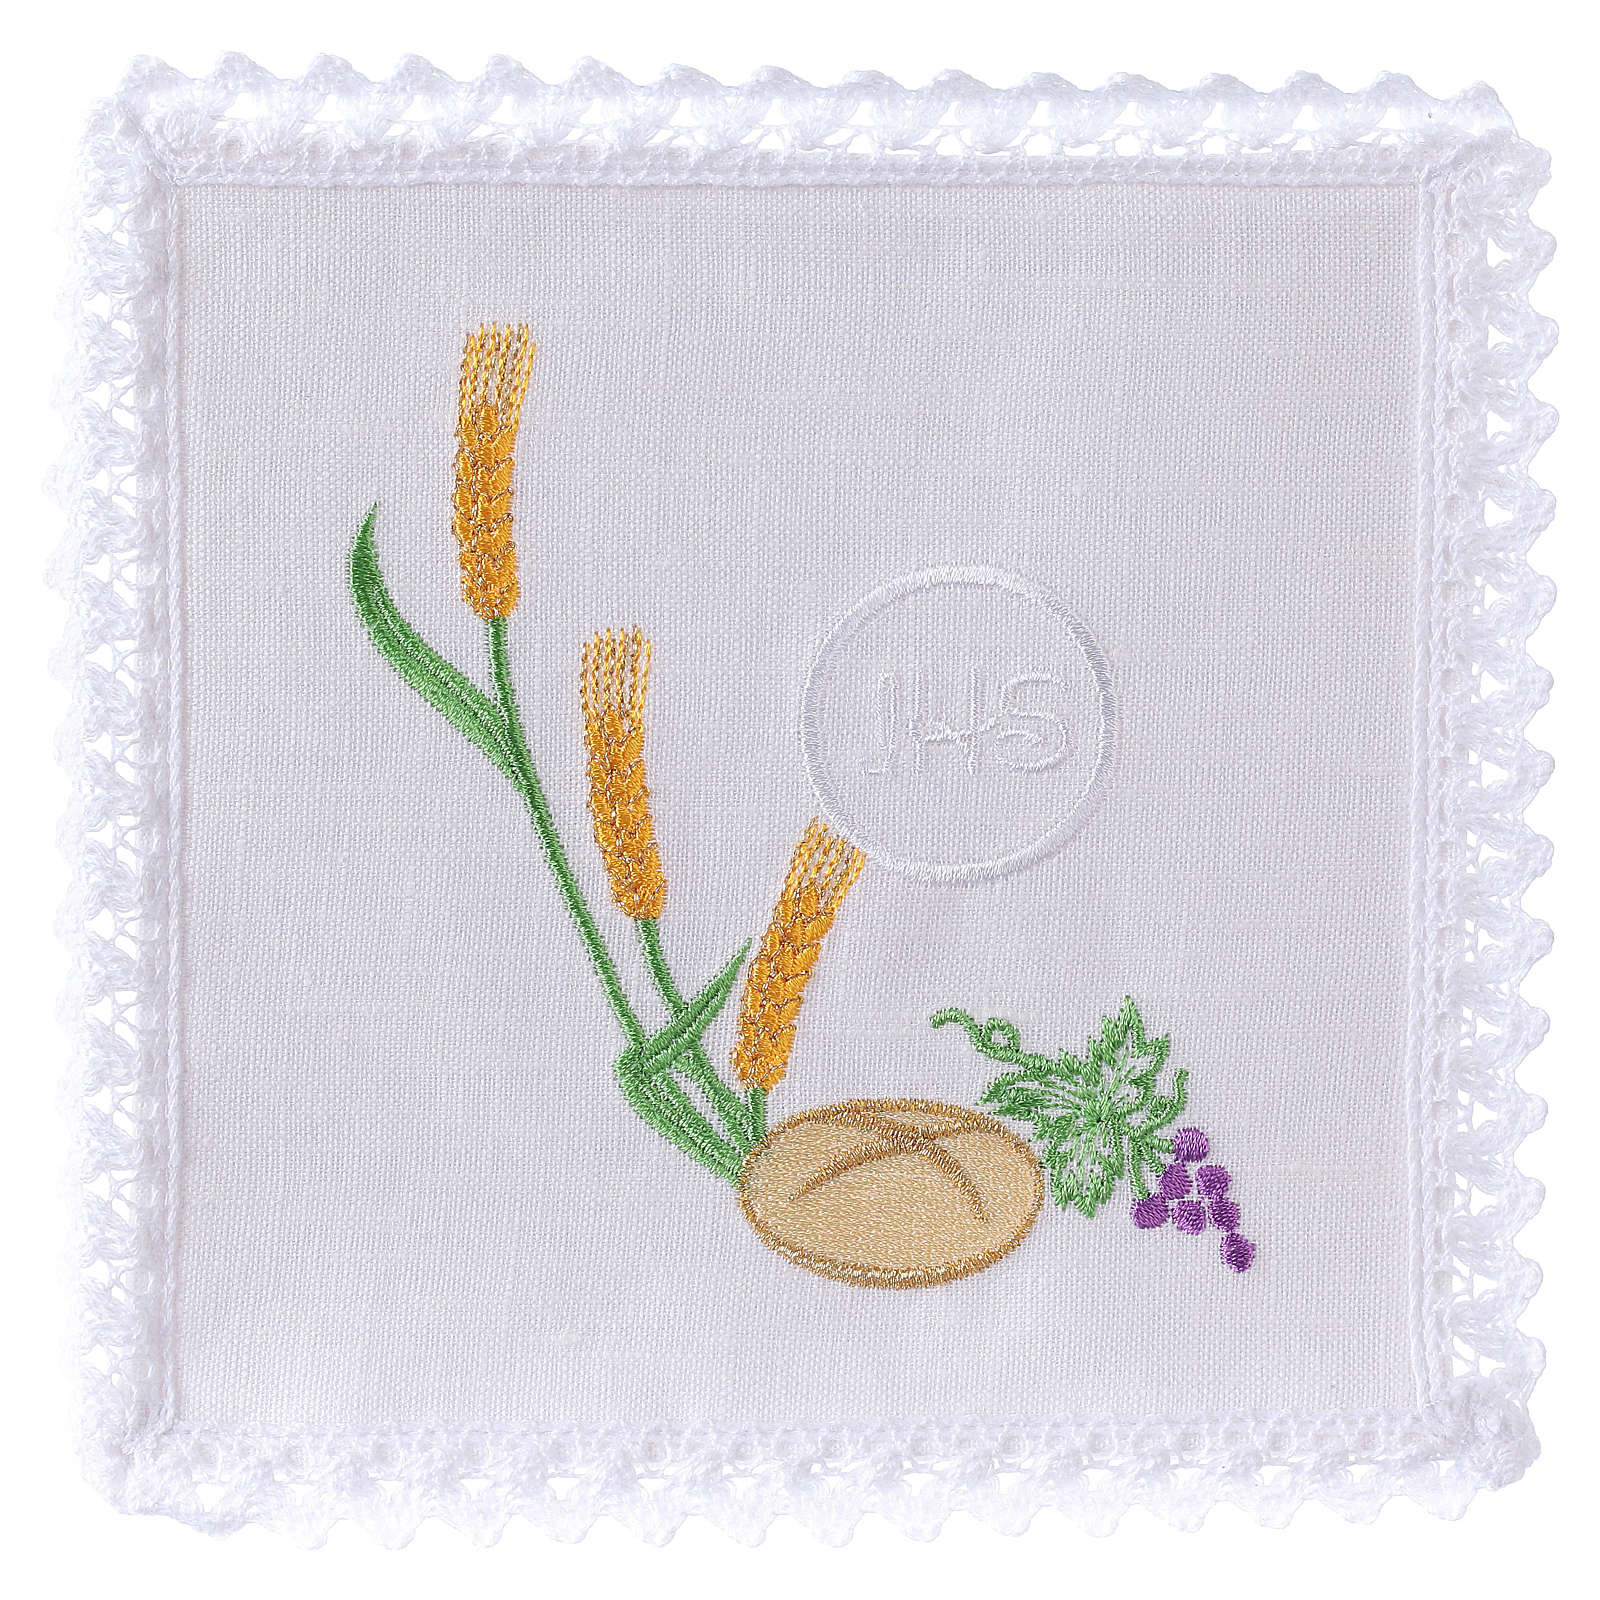 Altar cloth set with bread grapes wheat& JHS symbol 4